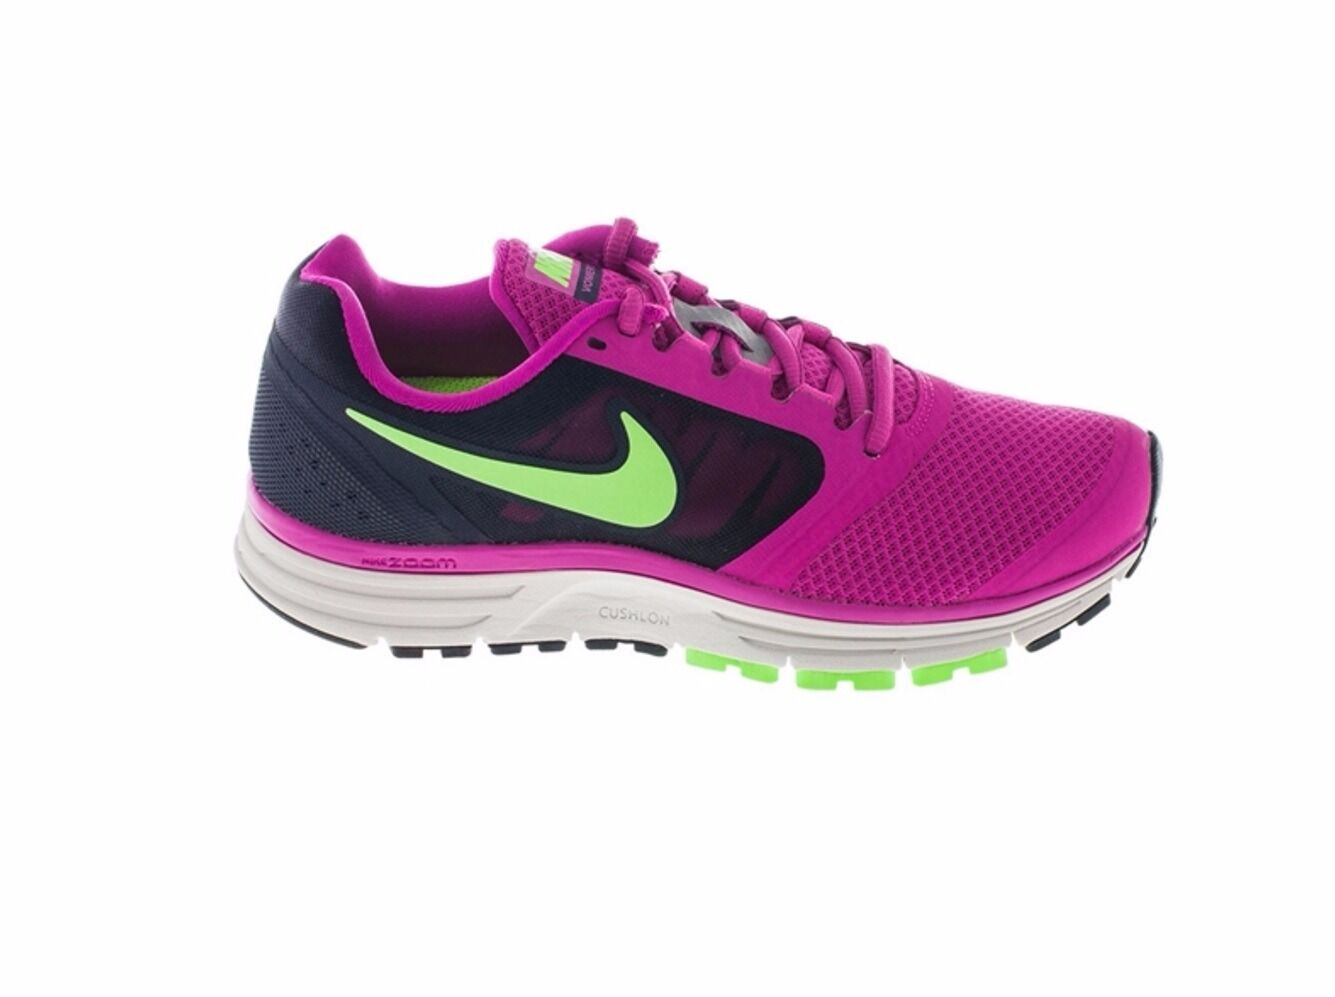 Nike Femme Zoom Vomero - + 8 Taille 3 - 8 trainer chaussure club rose nouveau rrp £ 100 / -